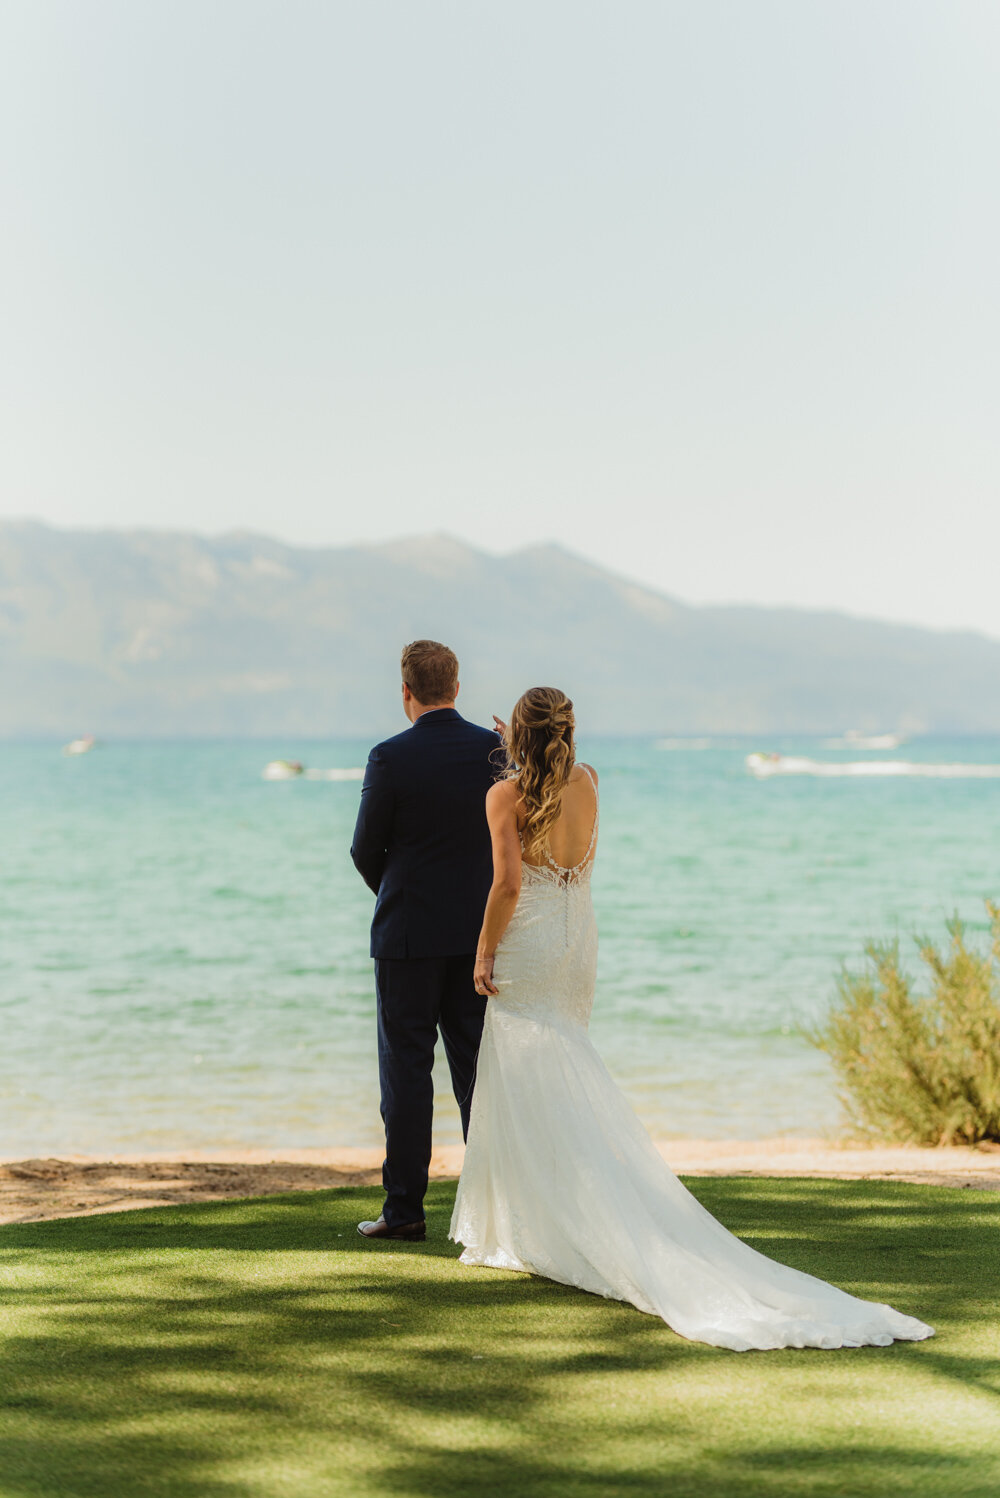 Edgewood Tahoe Wedding, first look photo